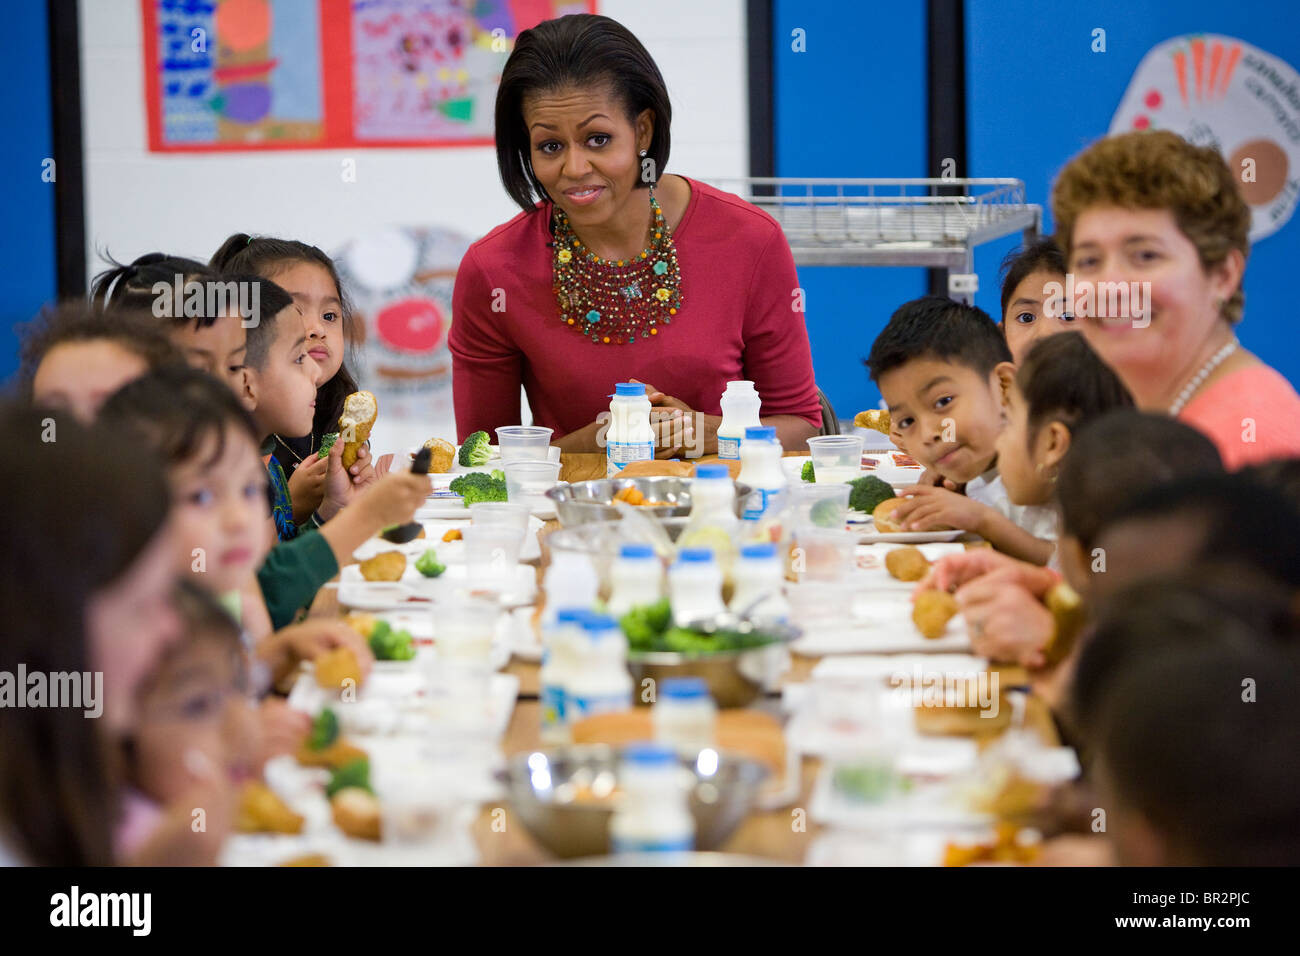 First Lady Michelle Obama Visits New Hampshire Estates Elementary Stock Photo Royalty Free